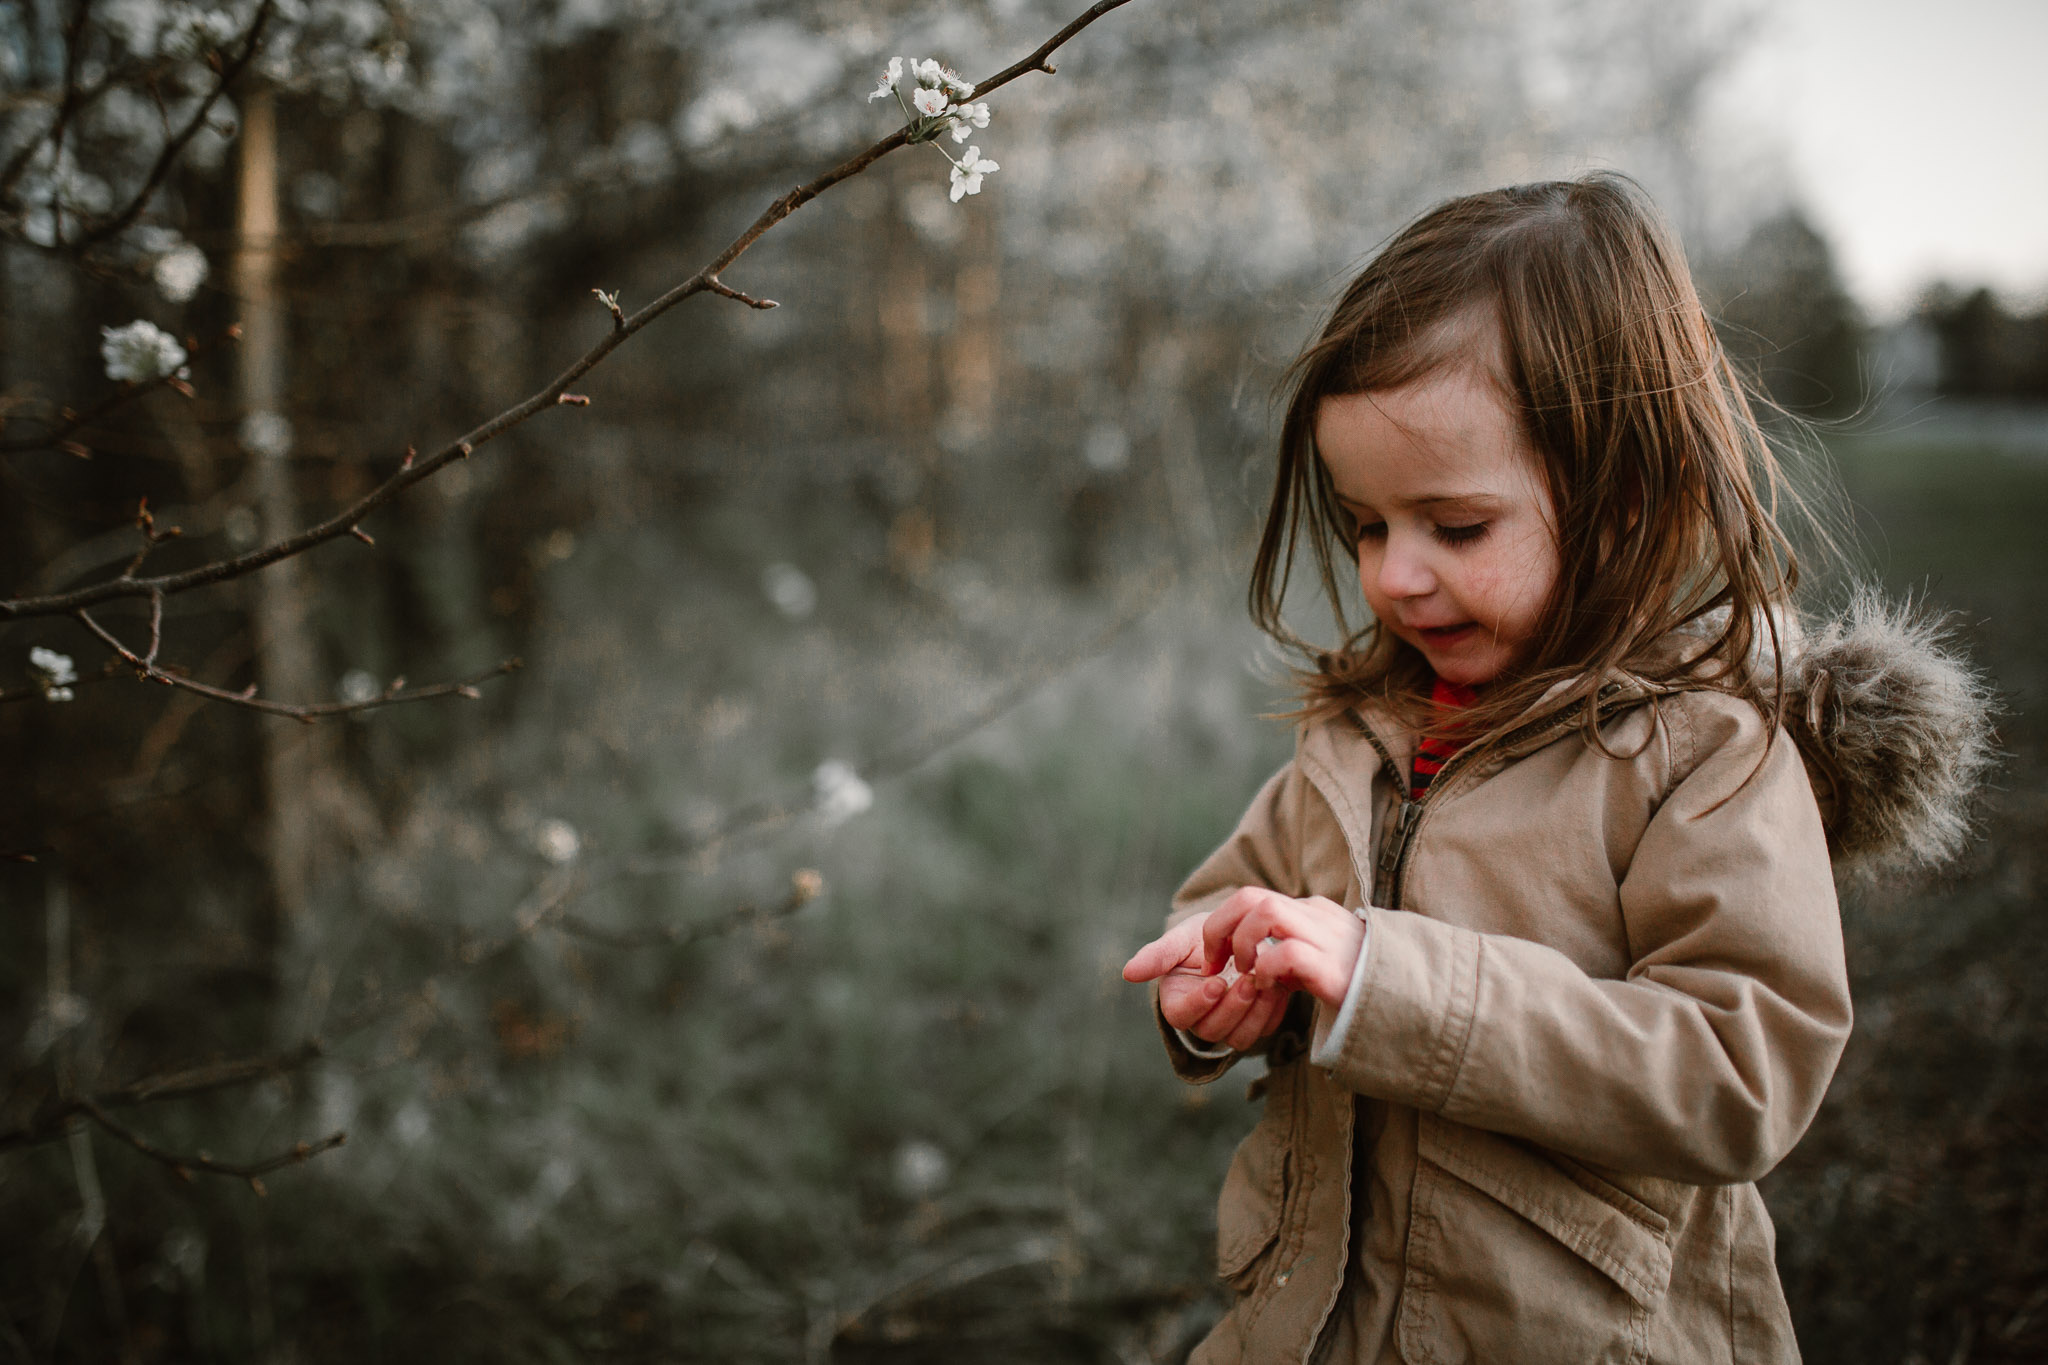 Toddler girl stands near a tree blooming with white flowers and examines one in her hand in Ashburn, Virginia